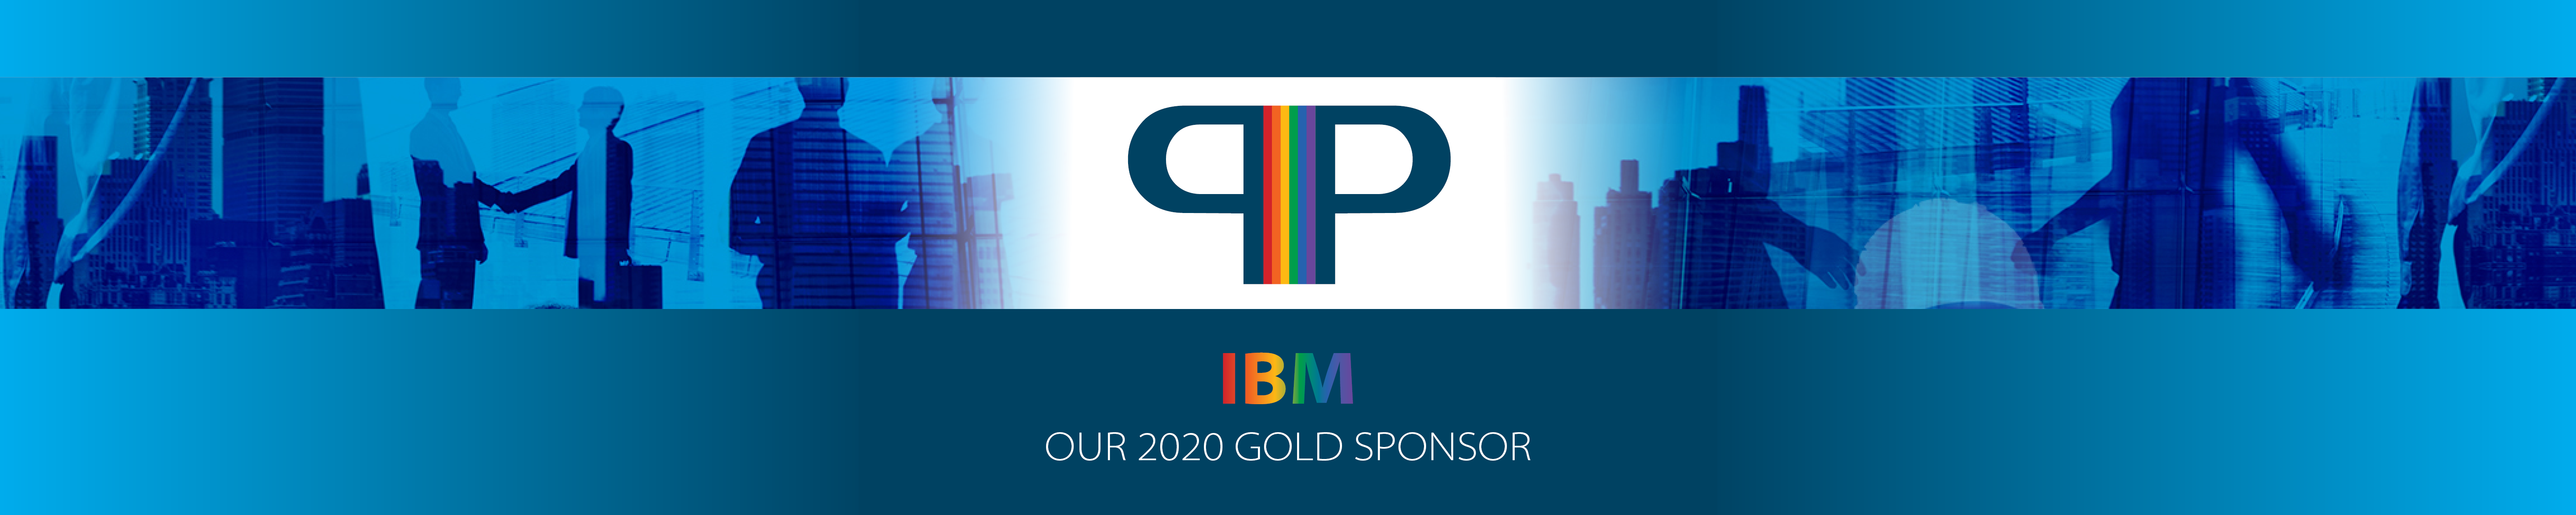 PIP_Conference_IBM_Gold